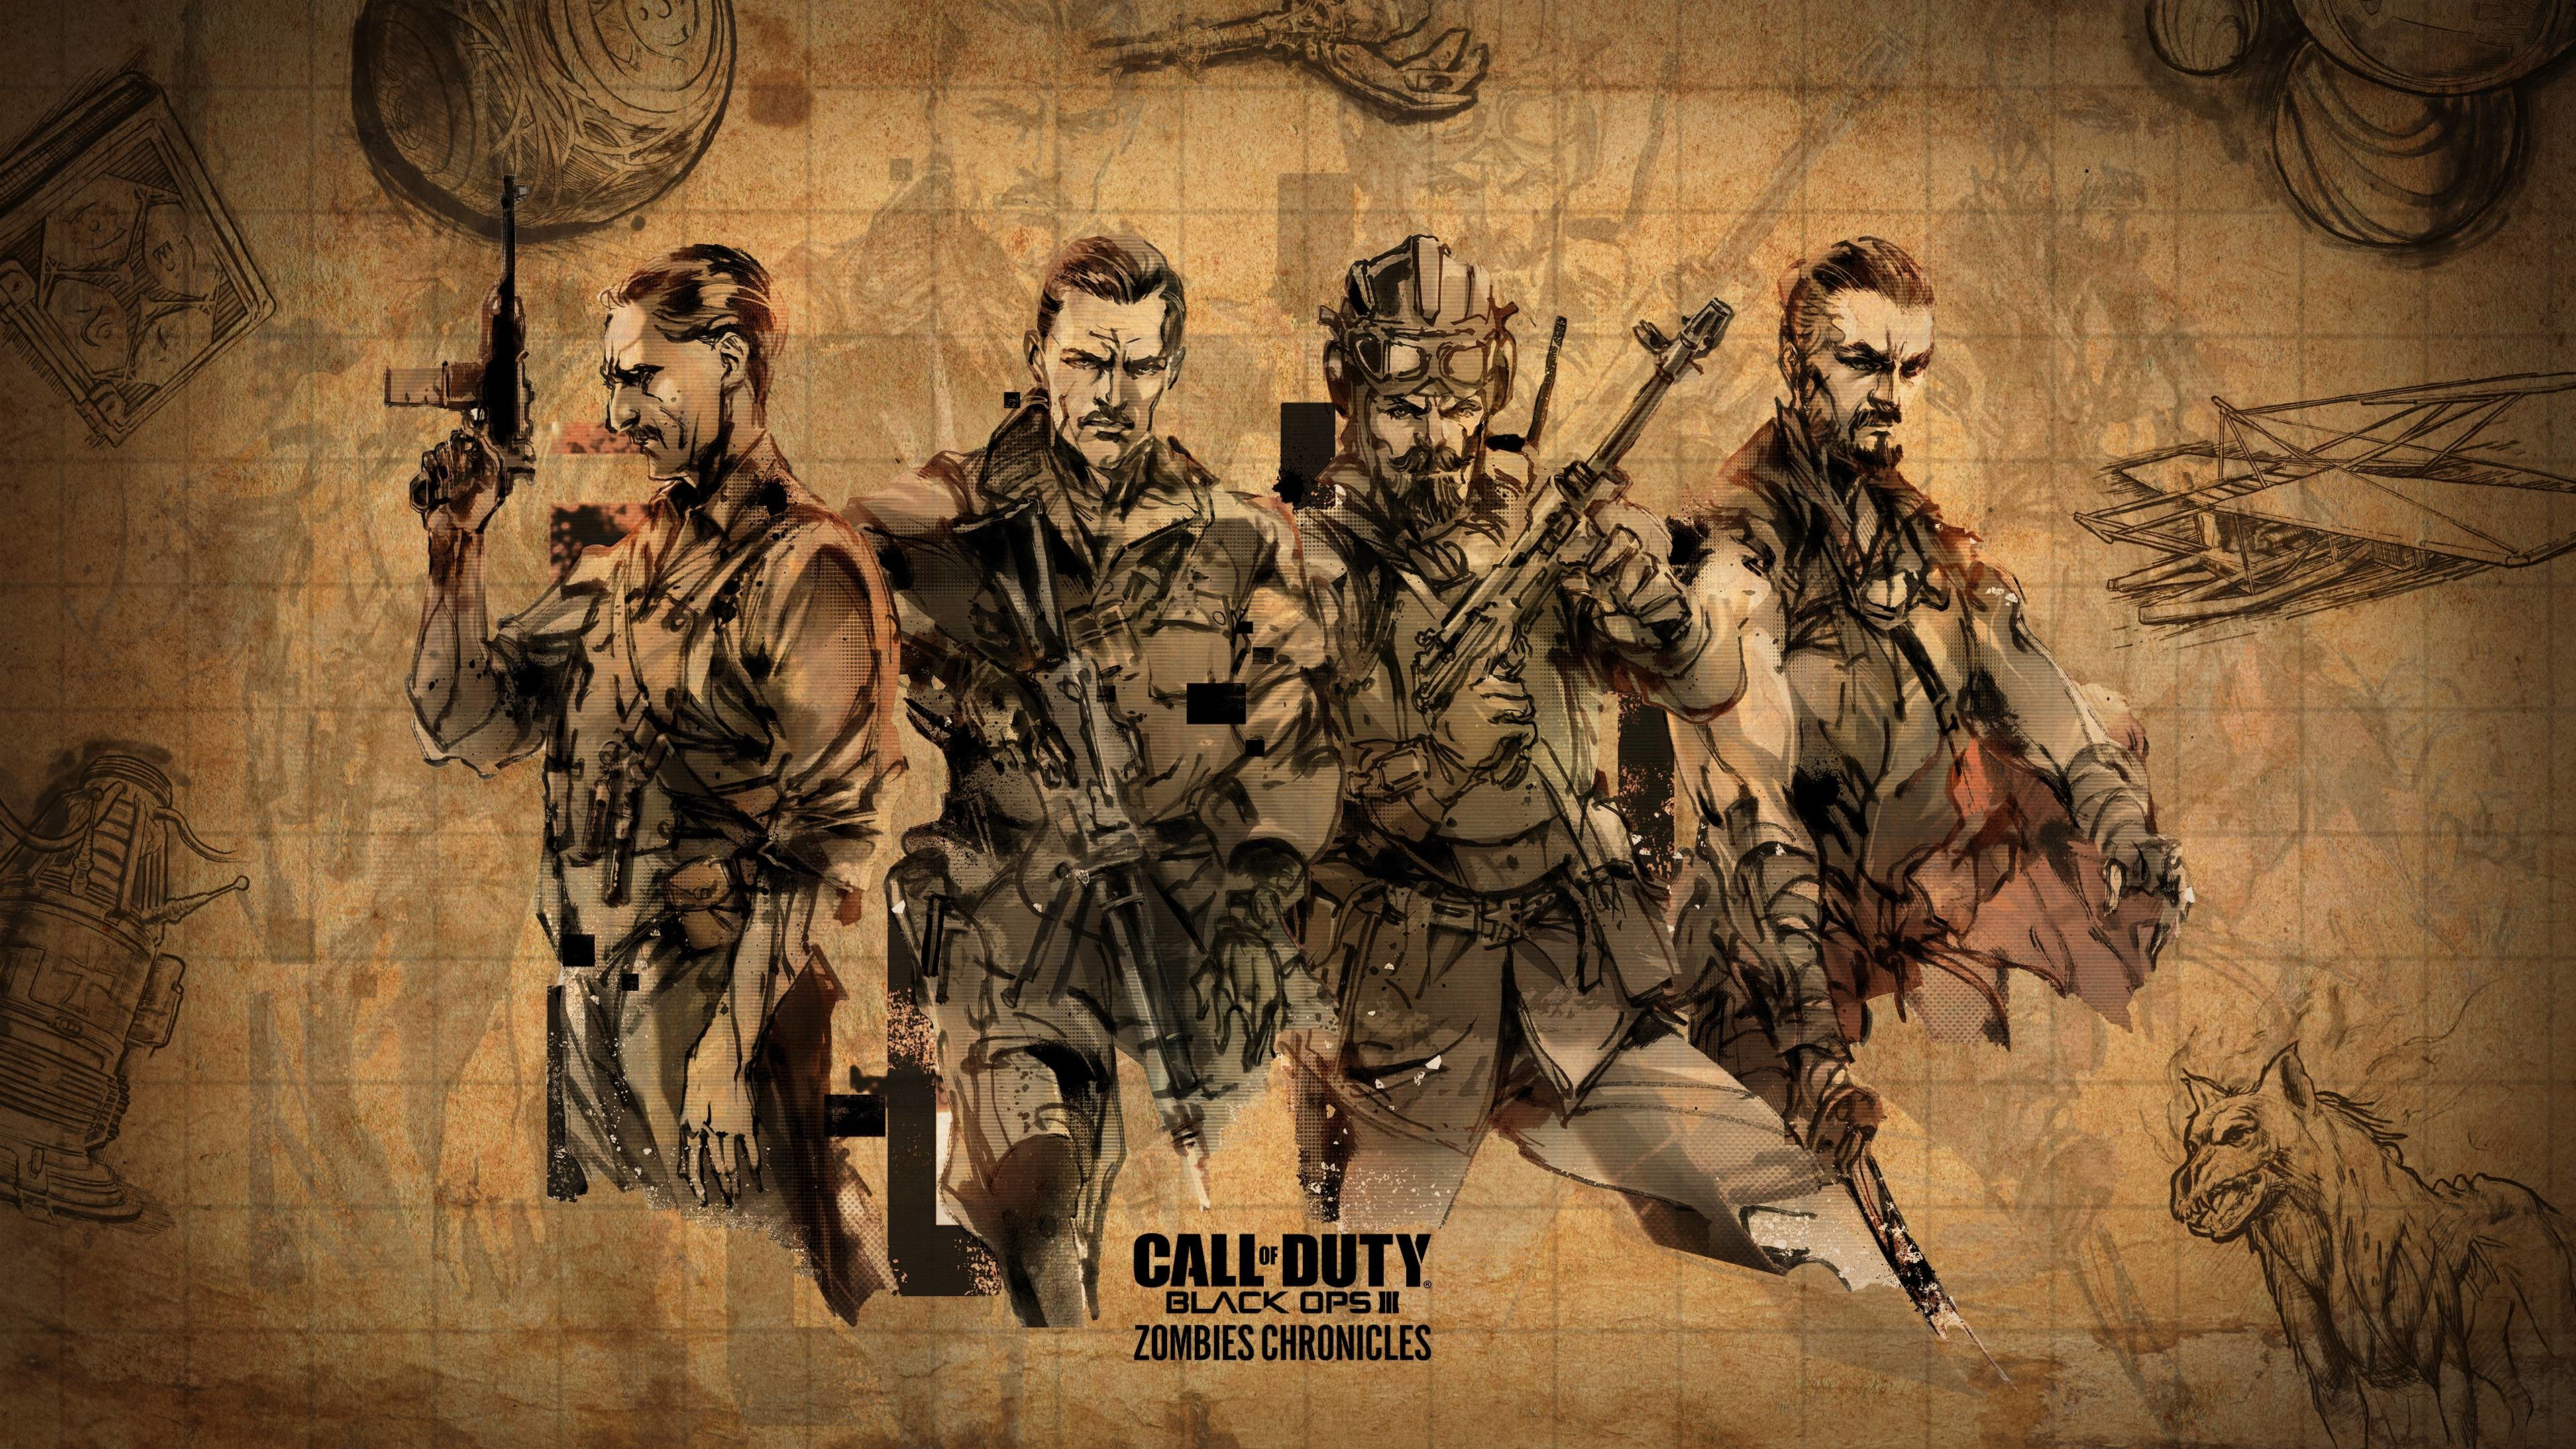 Call Of Duty Zombies Wallpapers: Black Ops Zombies Wallpapers 1080P (82+ Background Pictures